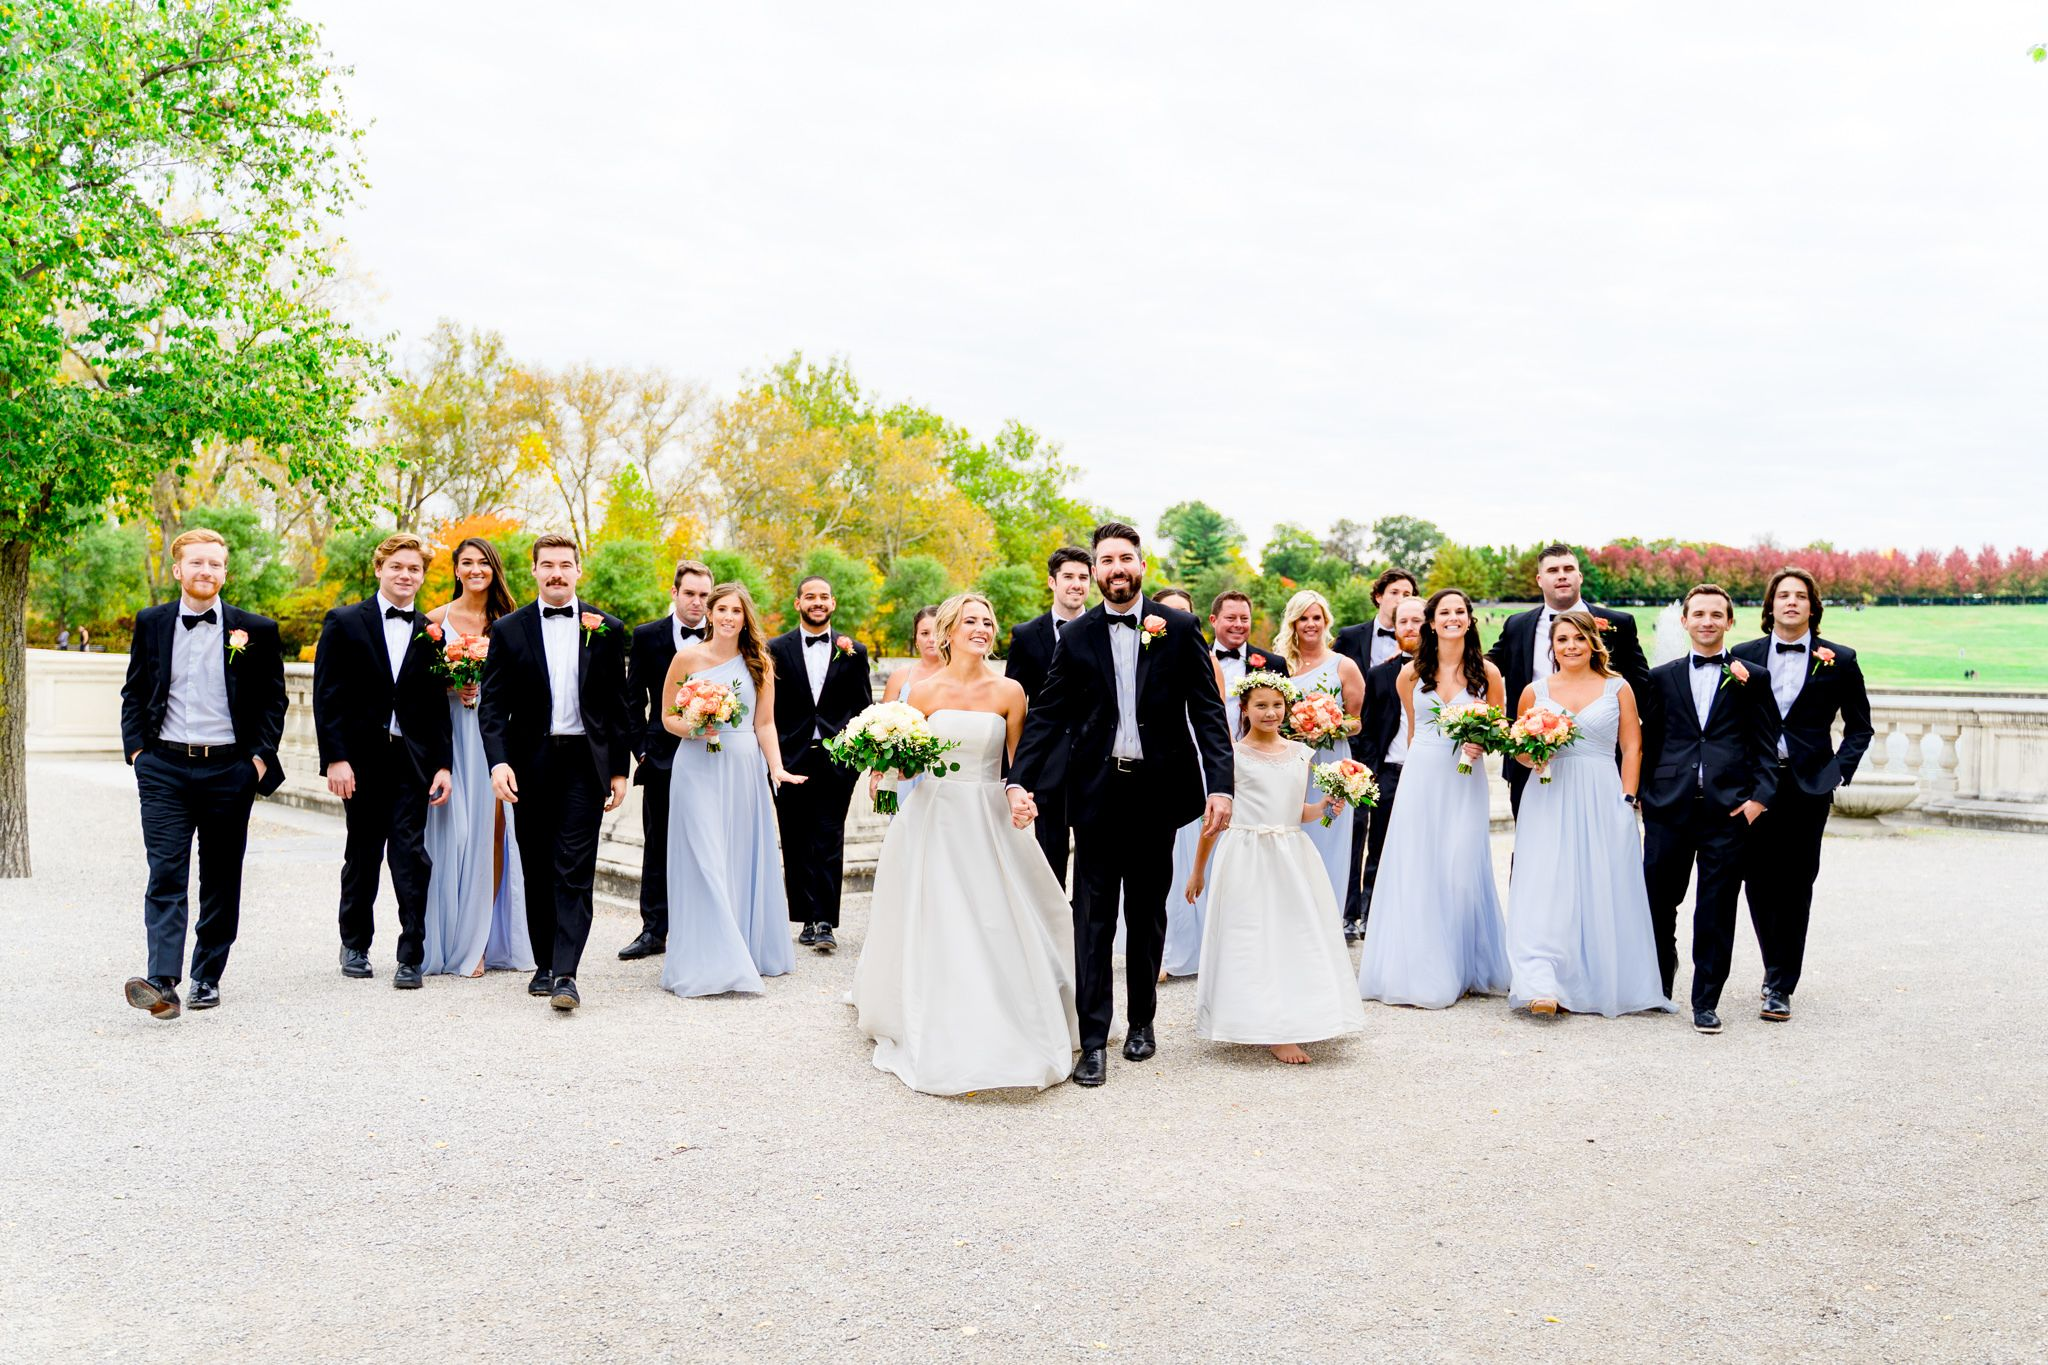 large wedding party in black suits and light blue dresses walk with bride and groom at Forest Park STL